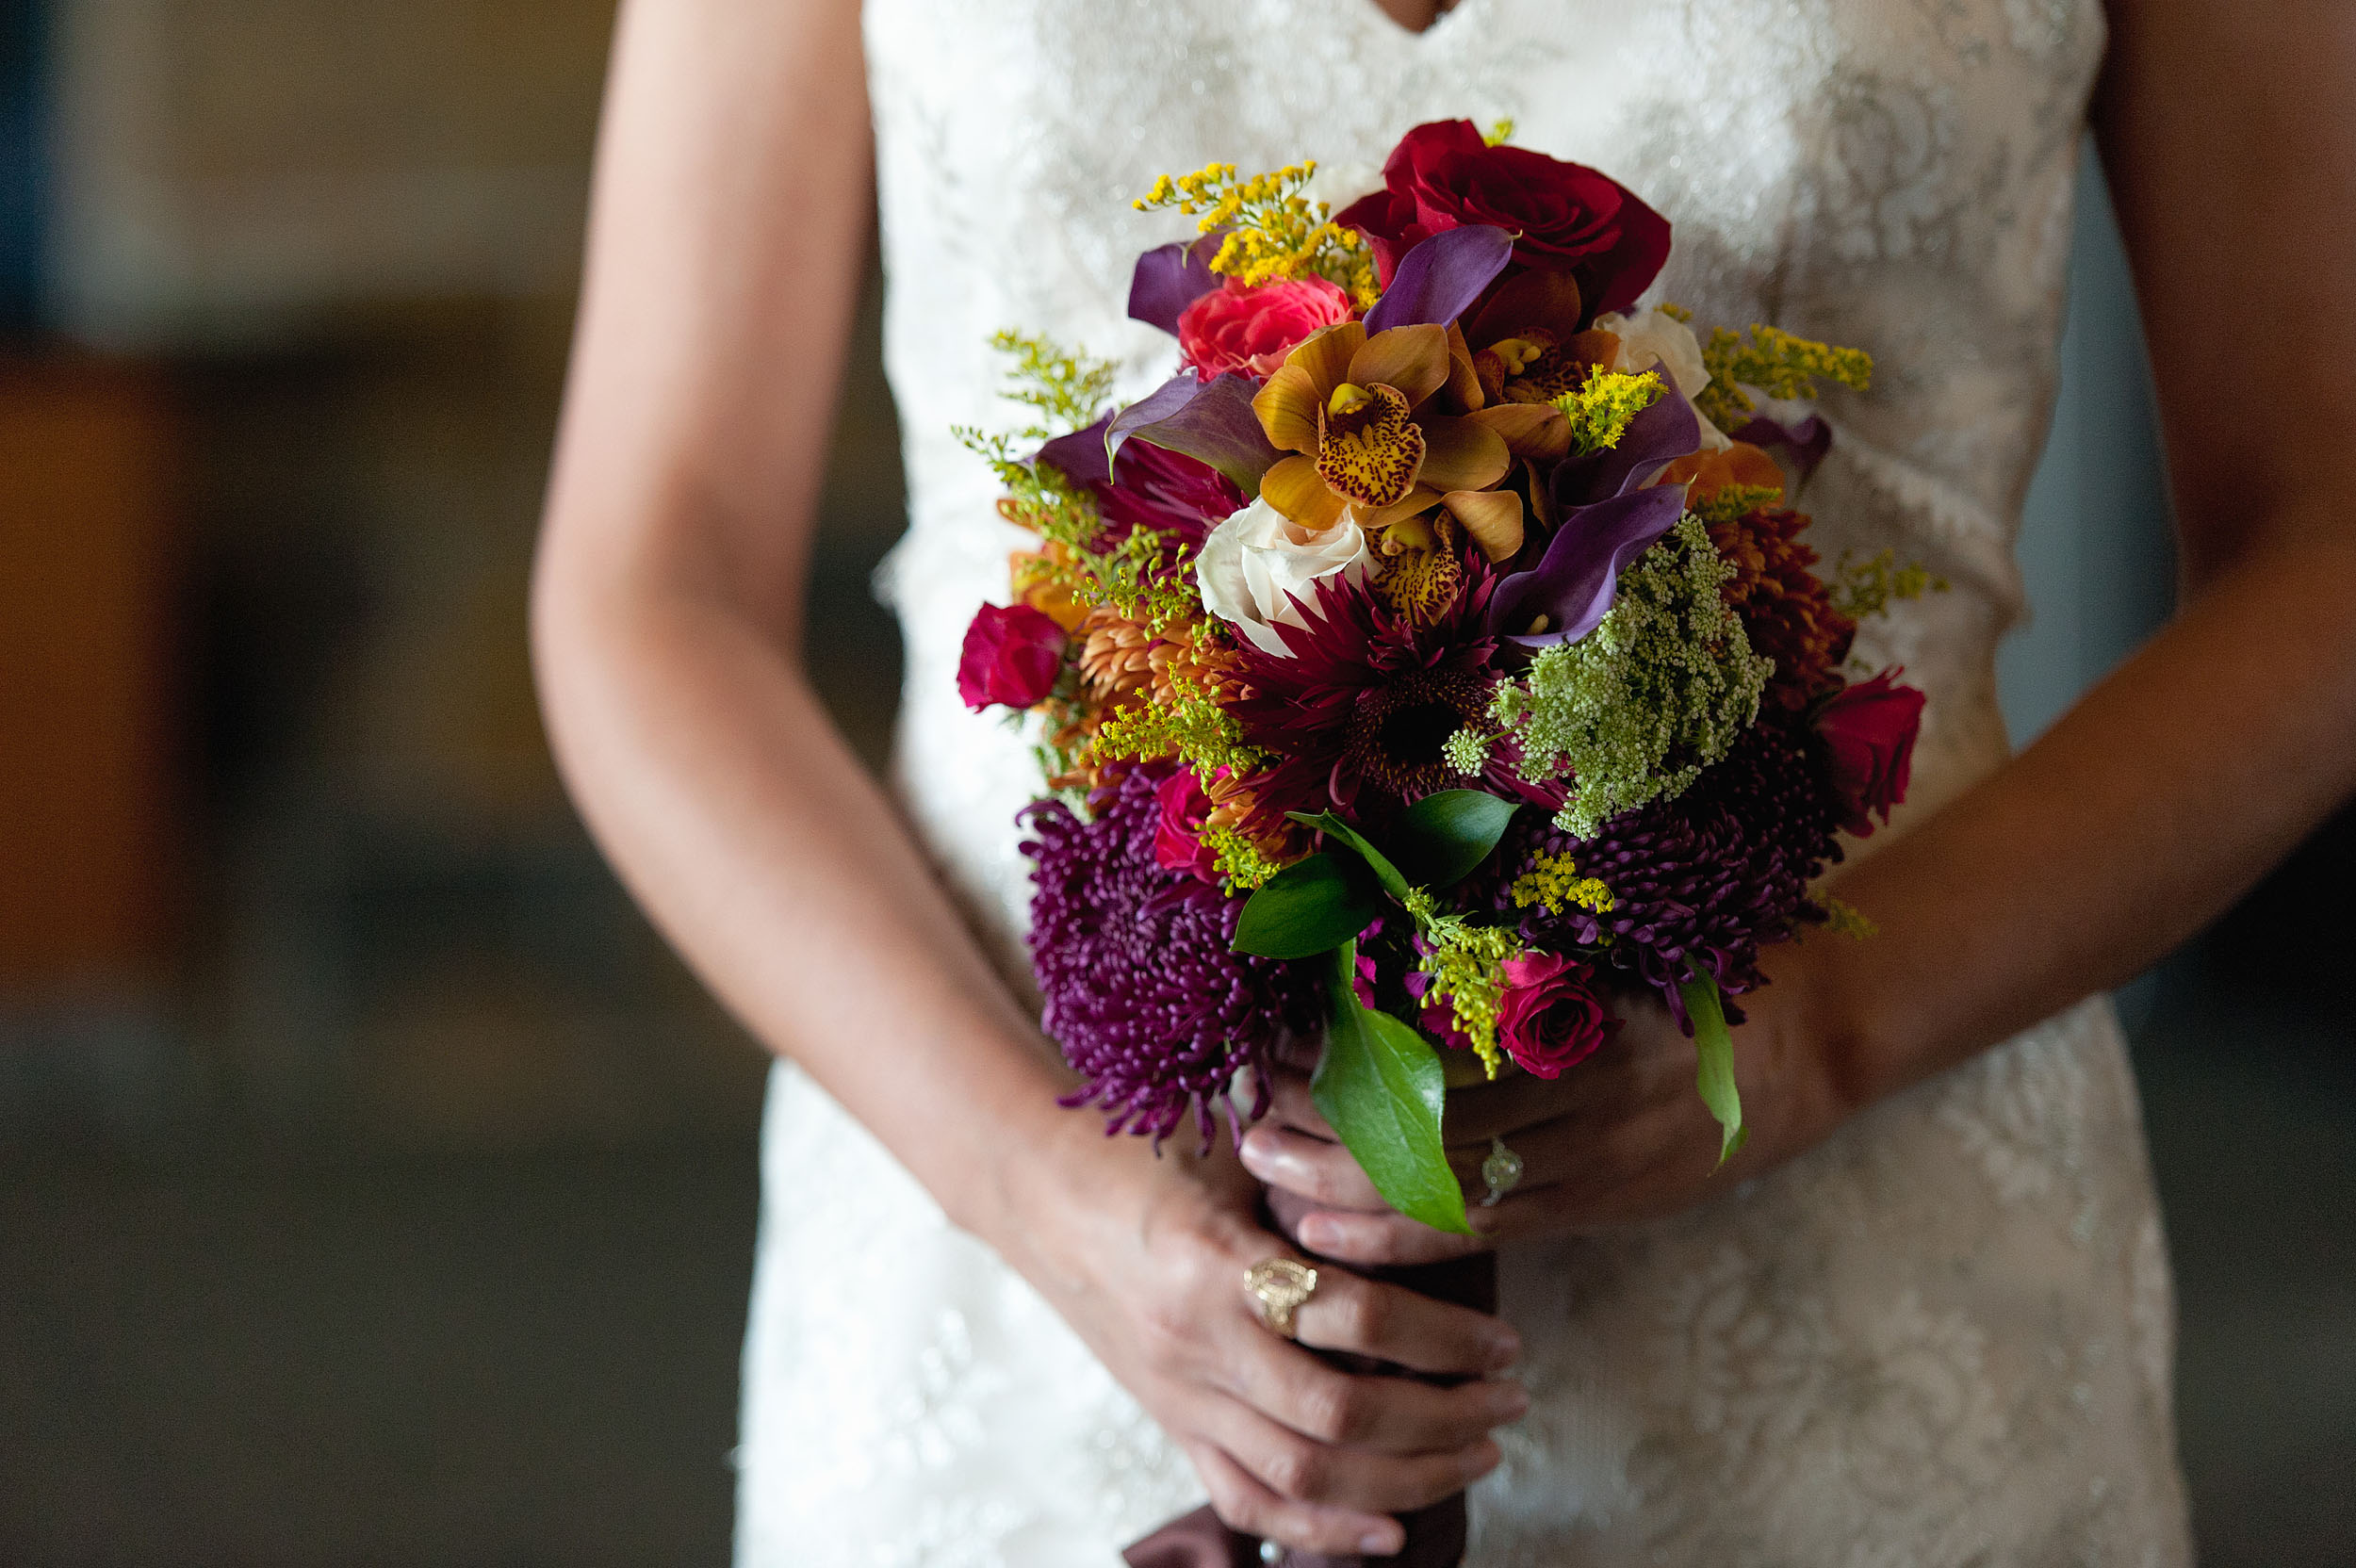 Detail of bride holding bouquet at Harvest Christian Fellowship in Riverside.